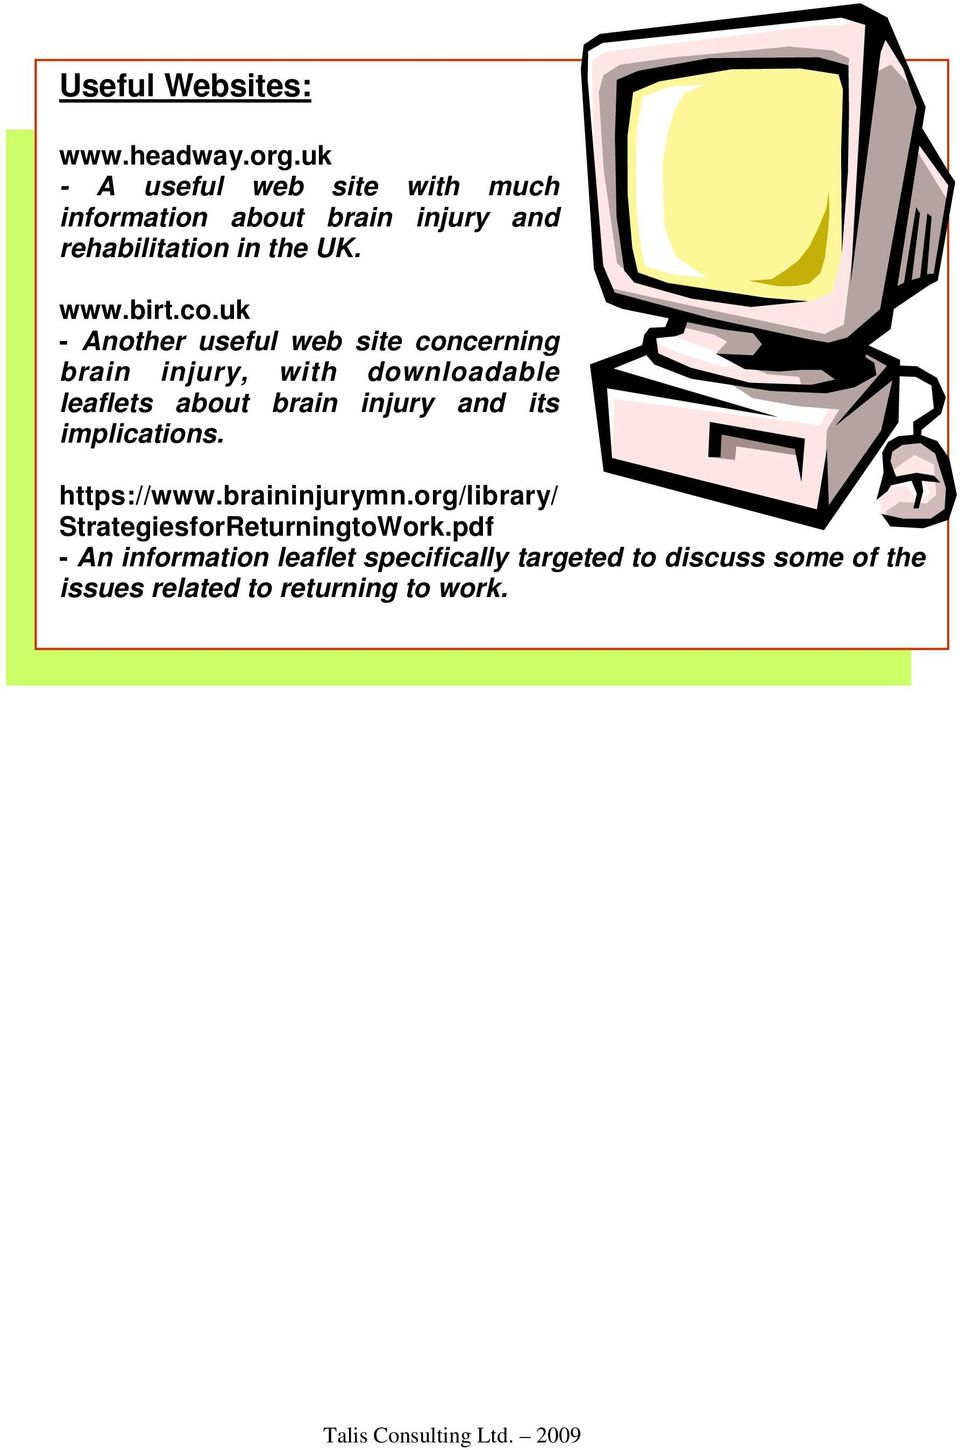 uk - Another useful web site concerning brain injury, with downloadable leaflets about brain injury and its